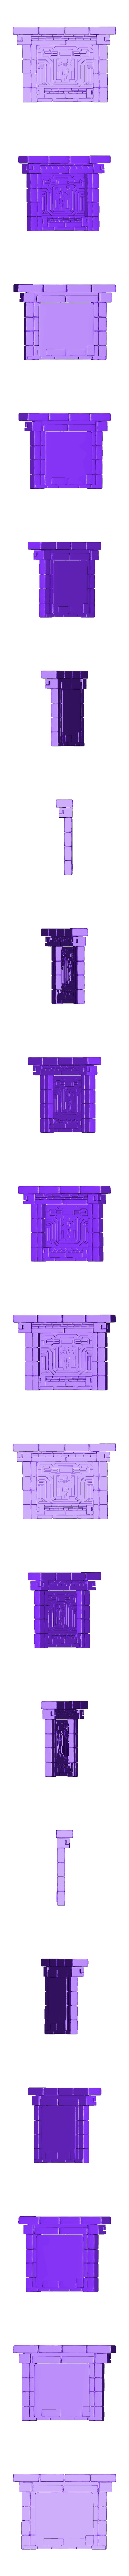 AlienJumpSign.stl Download free STL file Alien Ancient Props Chest Tablet Etc x12 Savage Planet • 3D printing template, CharlieVet